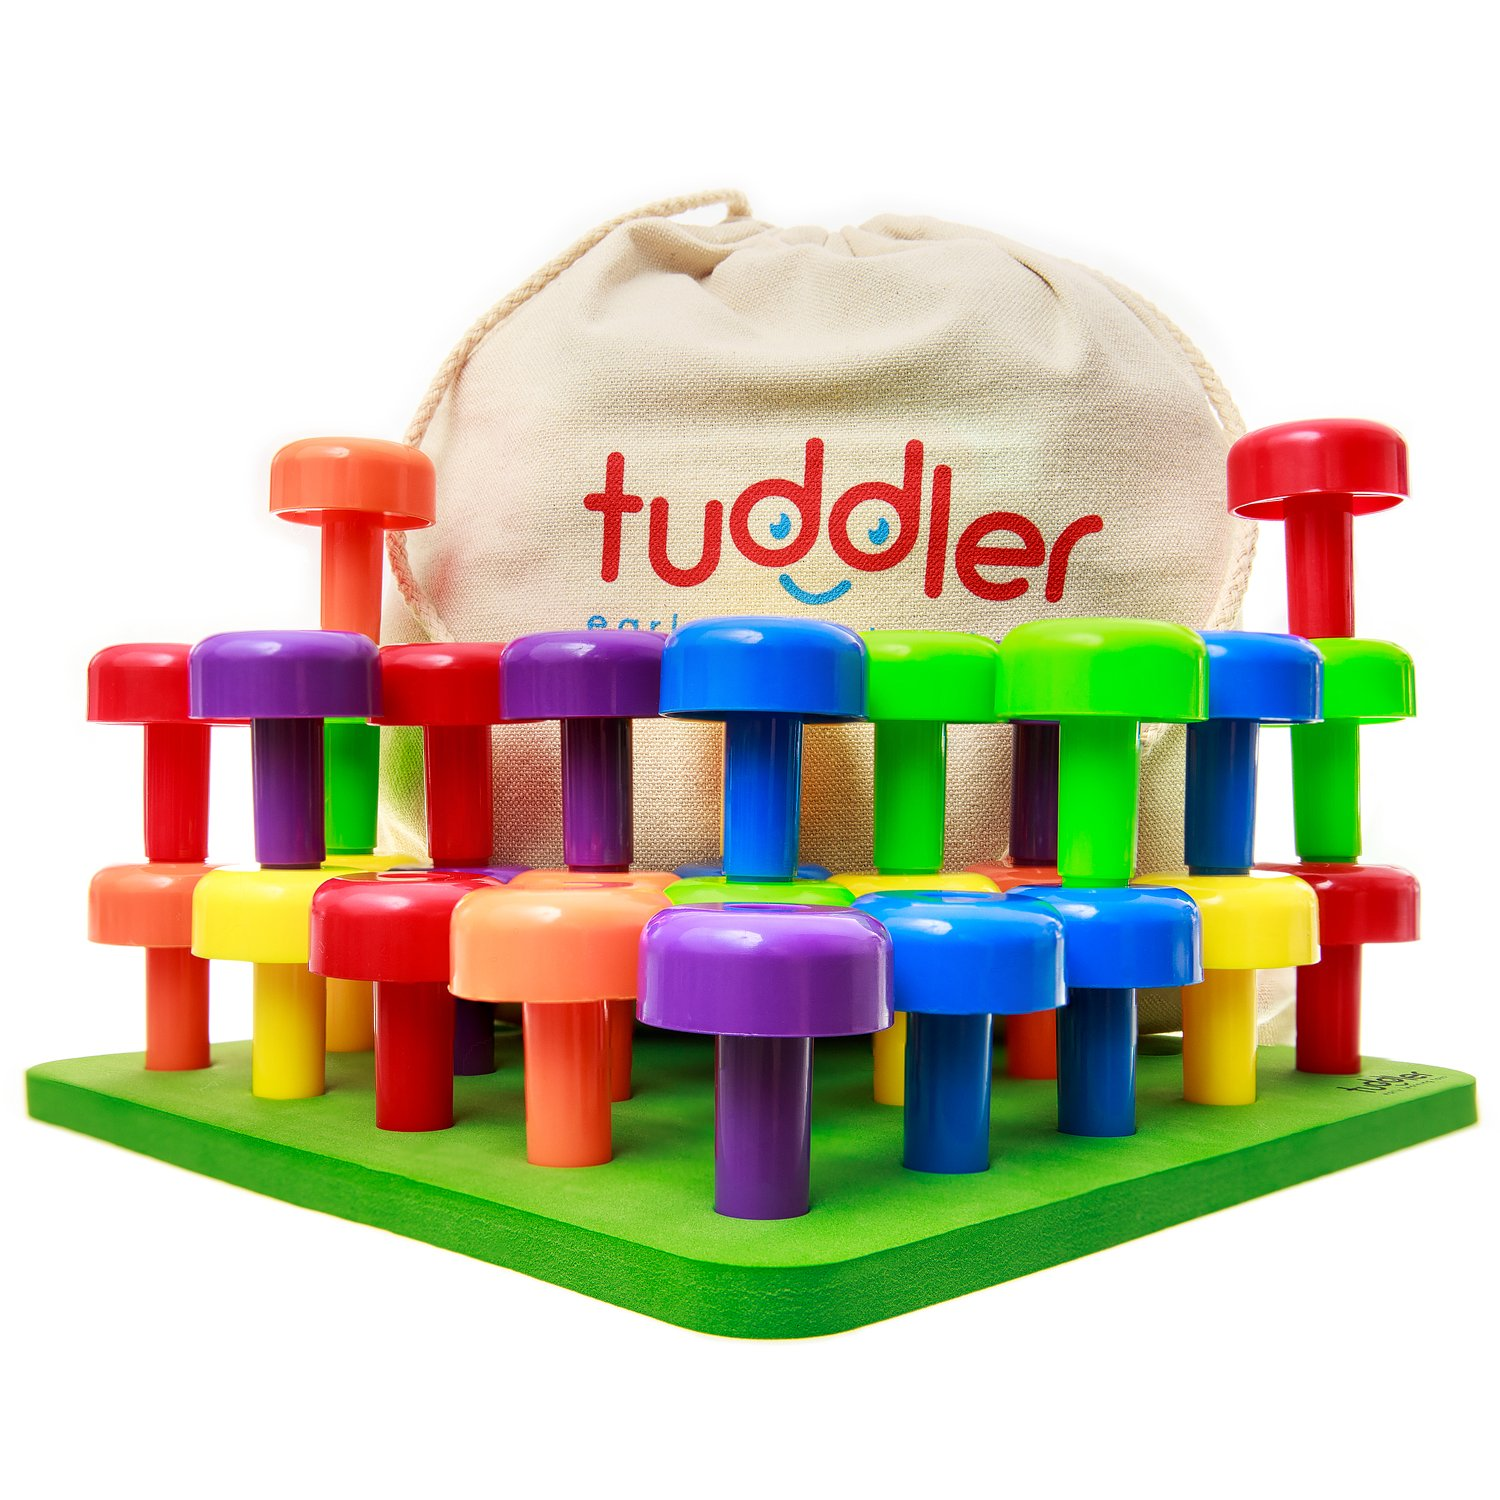 Brightly Colored Stackable Pegs and Peg Board Set / Montessori Educational Toy for Toddlers and Kids + Pattern Card + Drawstring Backpack for portability and neat storage + Ebook by Tuddler Review